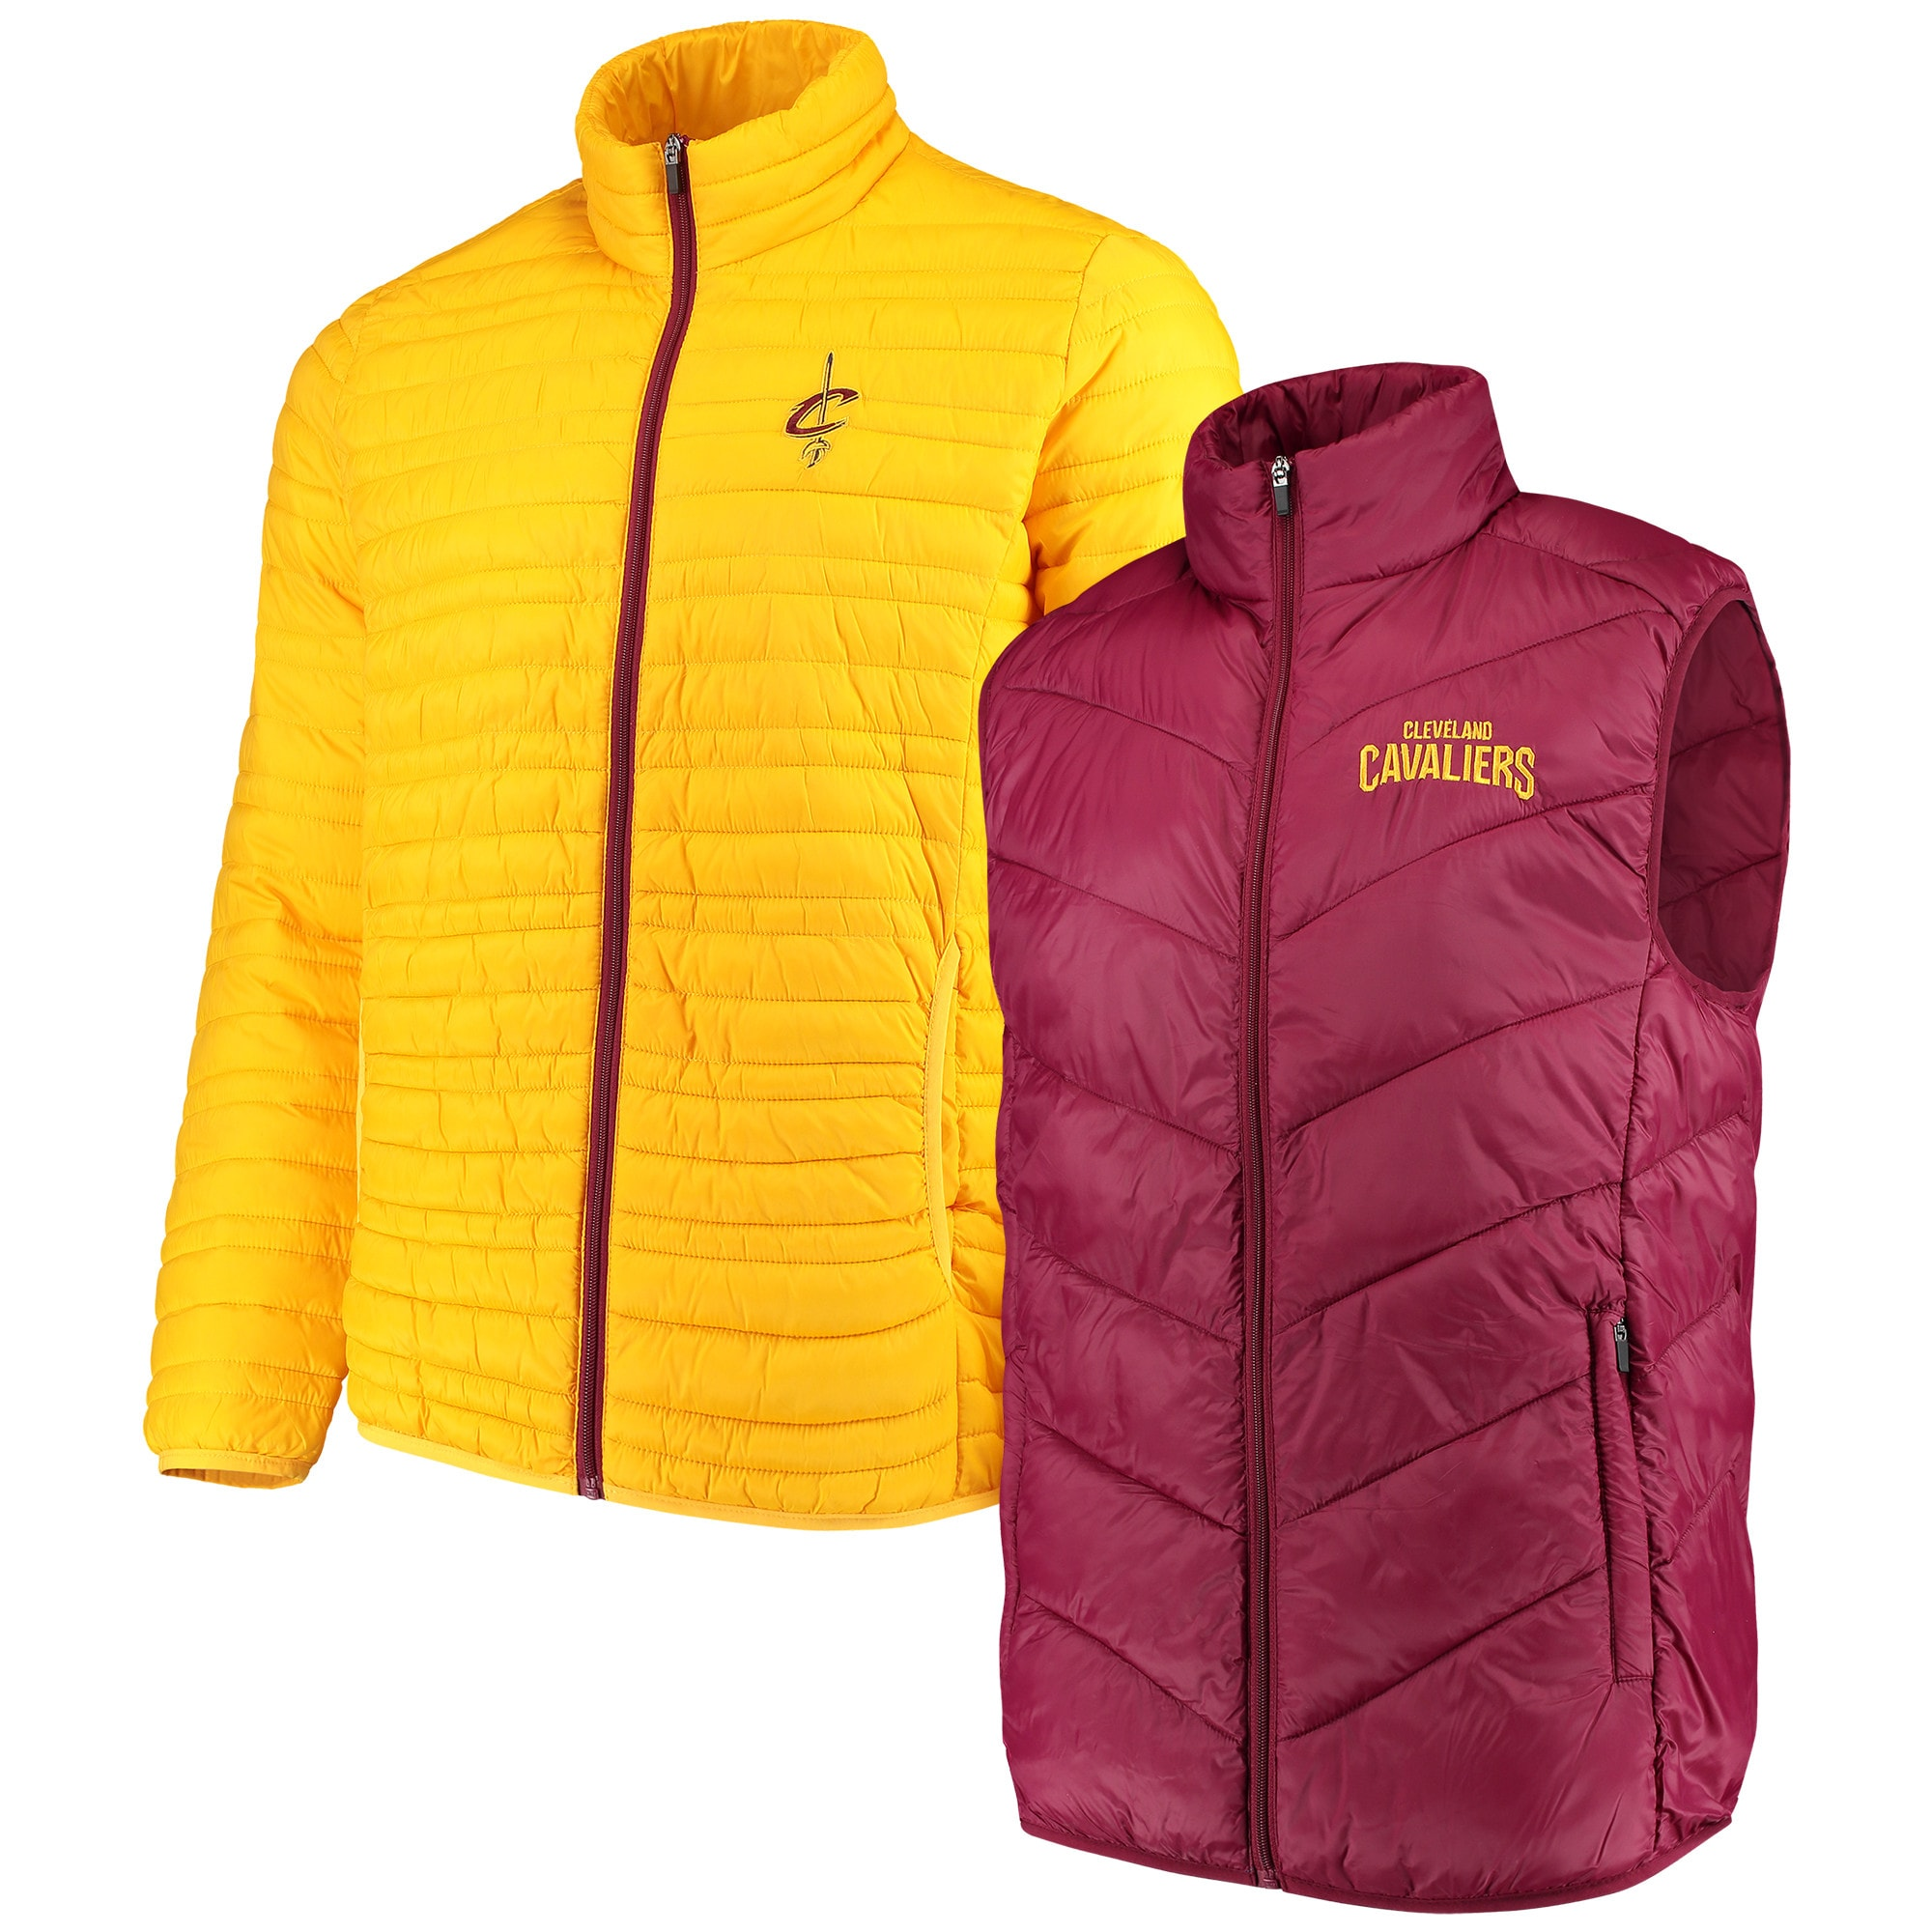 Cleveland Cavaliers G-III Sports by Carl Banks Three & Out 3-in-1 System Full-Zip Vest & Jacket Set - Wine/Gold